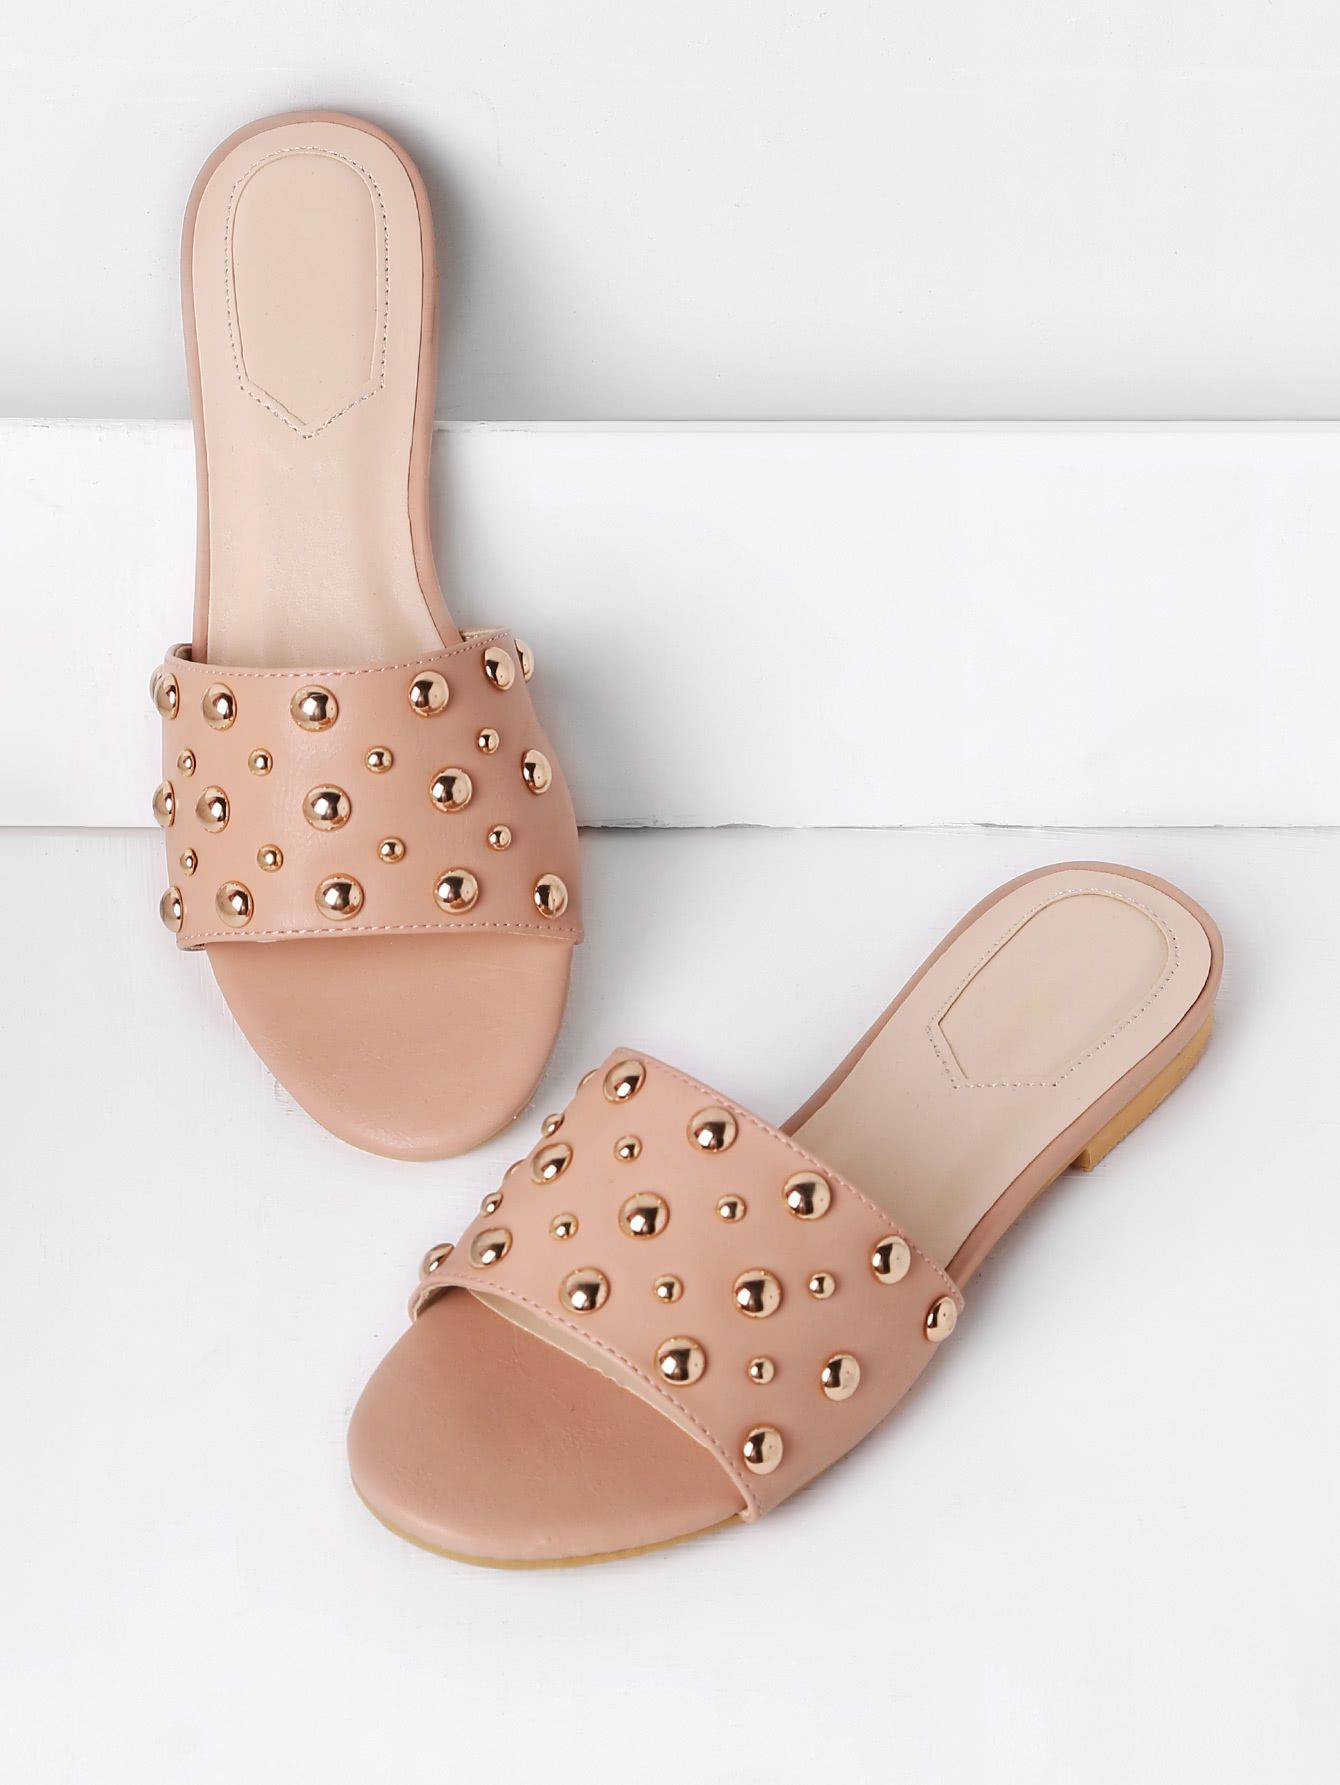 Beaded SandalsShoes Detail 2019Flats In Flat Sandals nX0wO8Pk